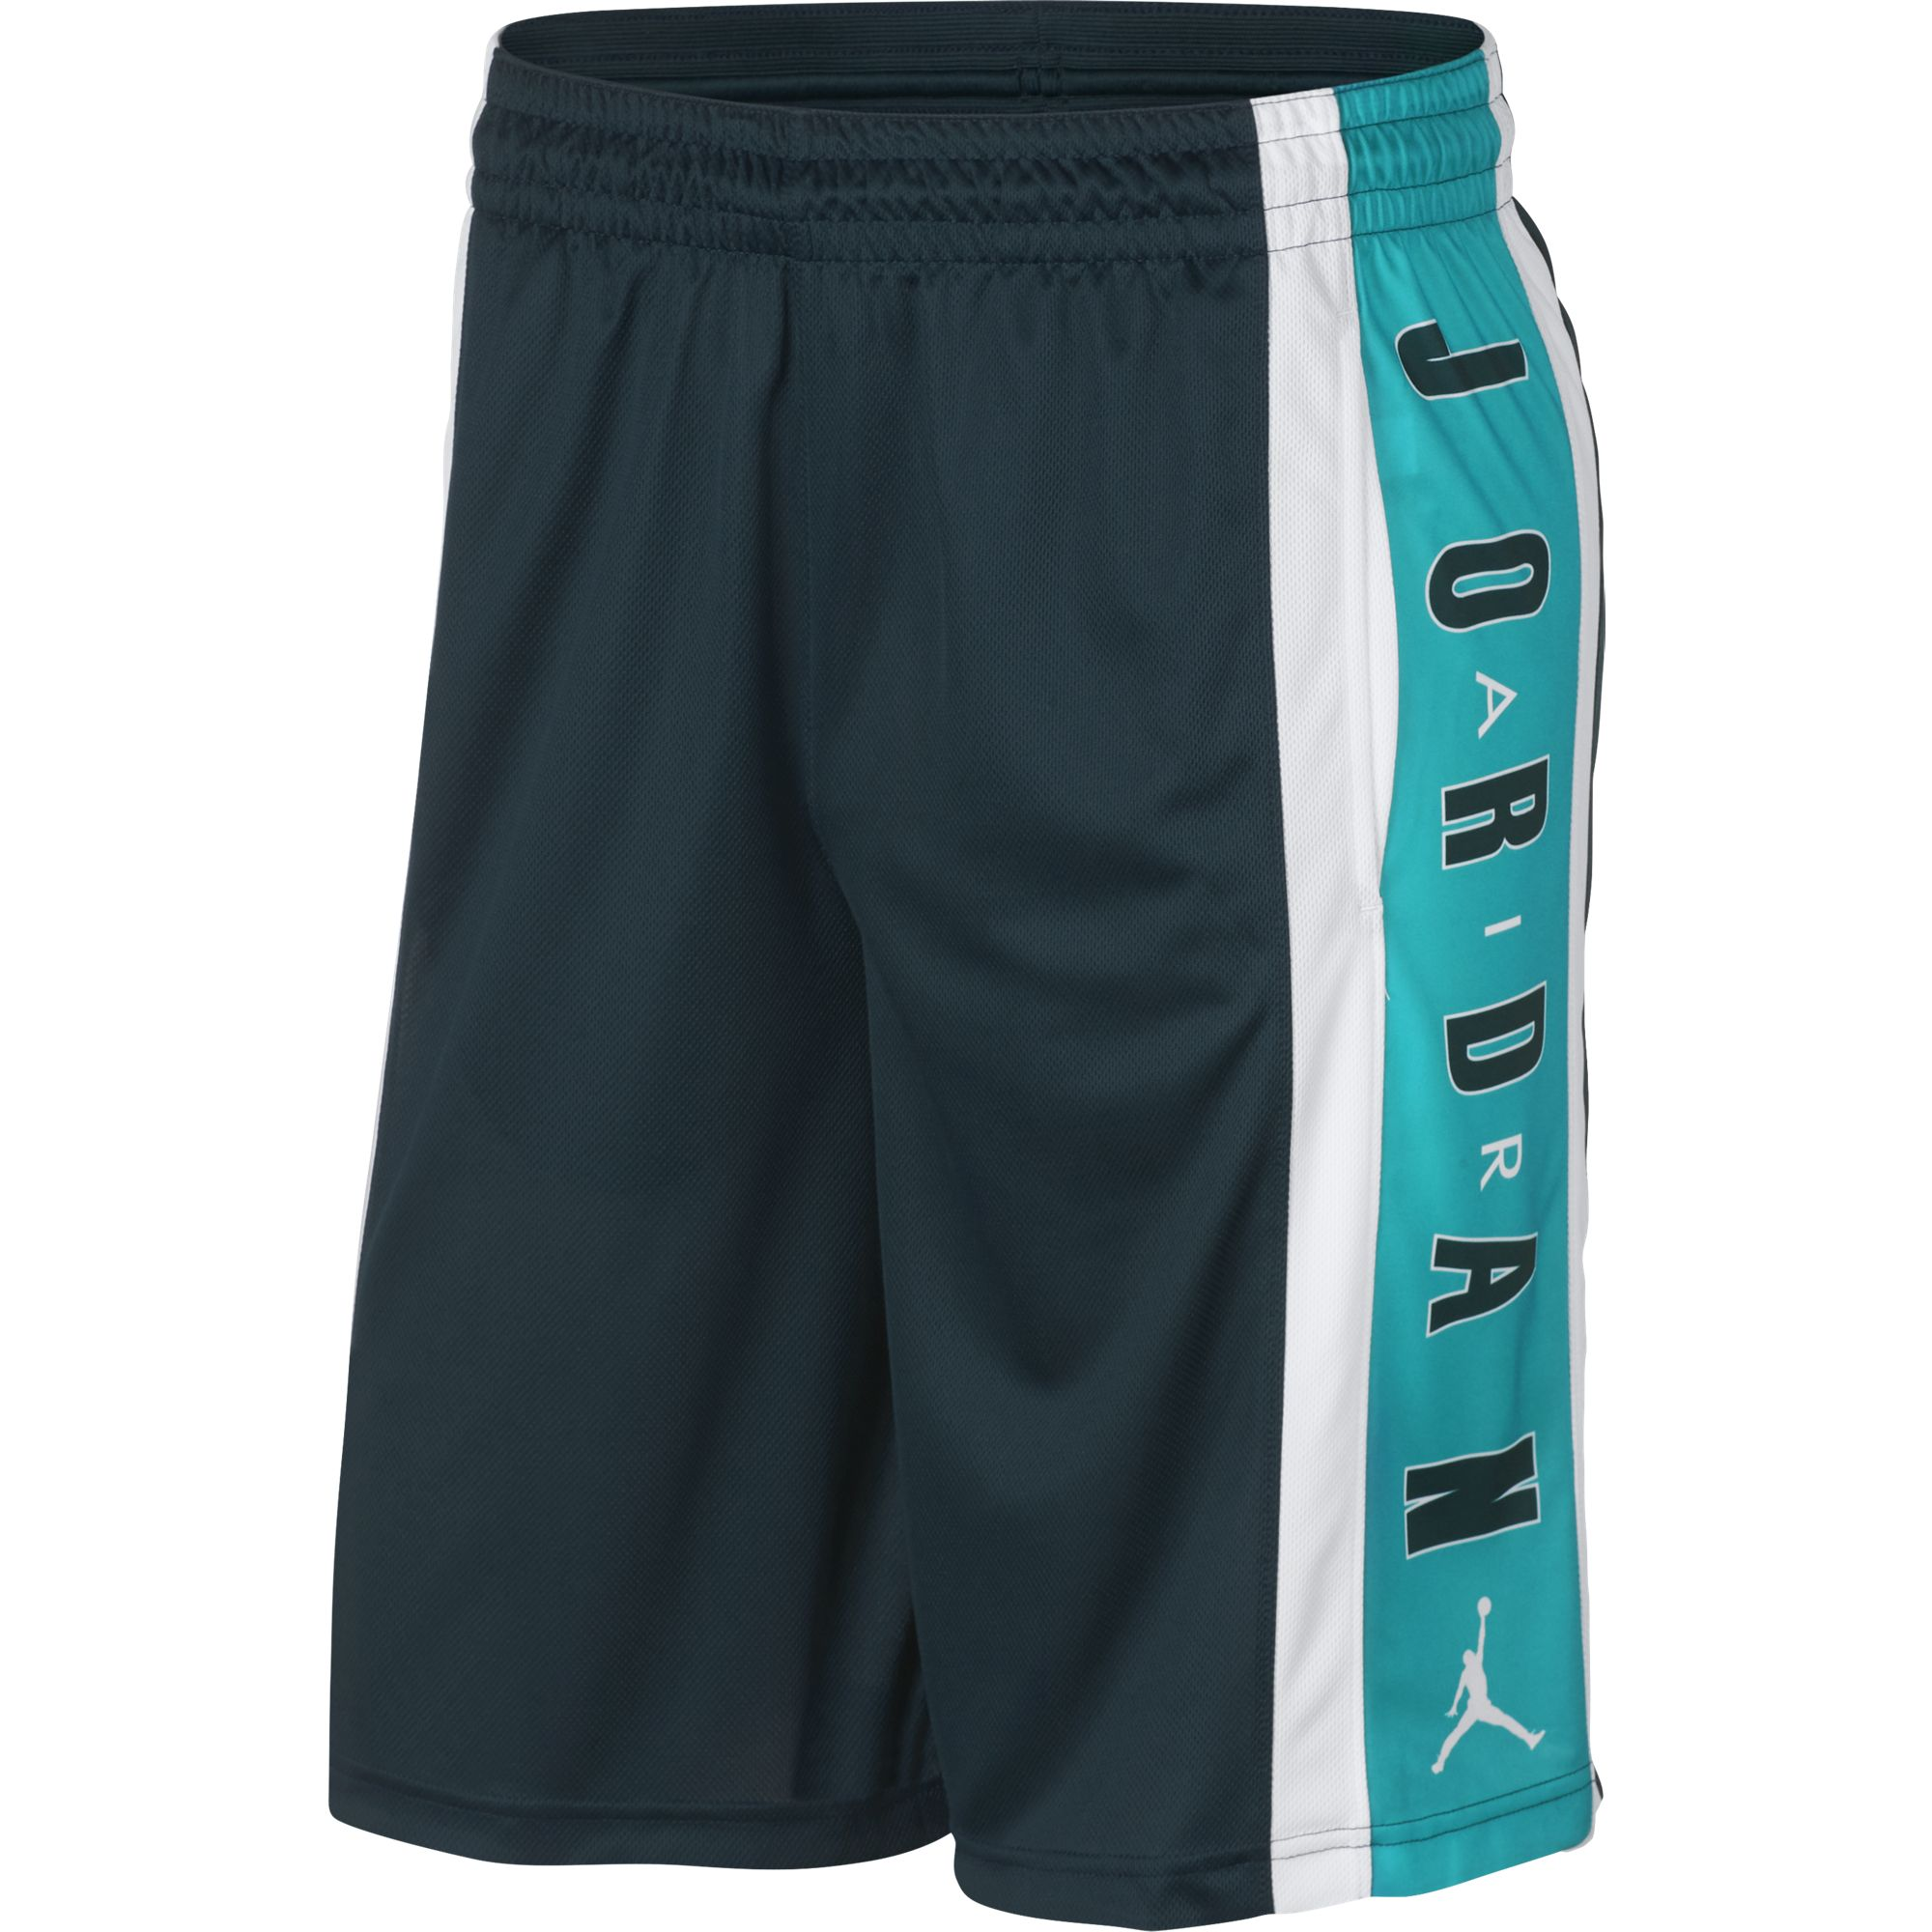 Nike Jordan Breathe Rise 3 Basketball Shorts - NK-924566-372